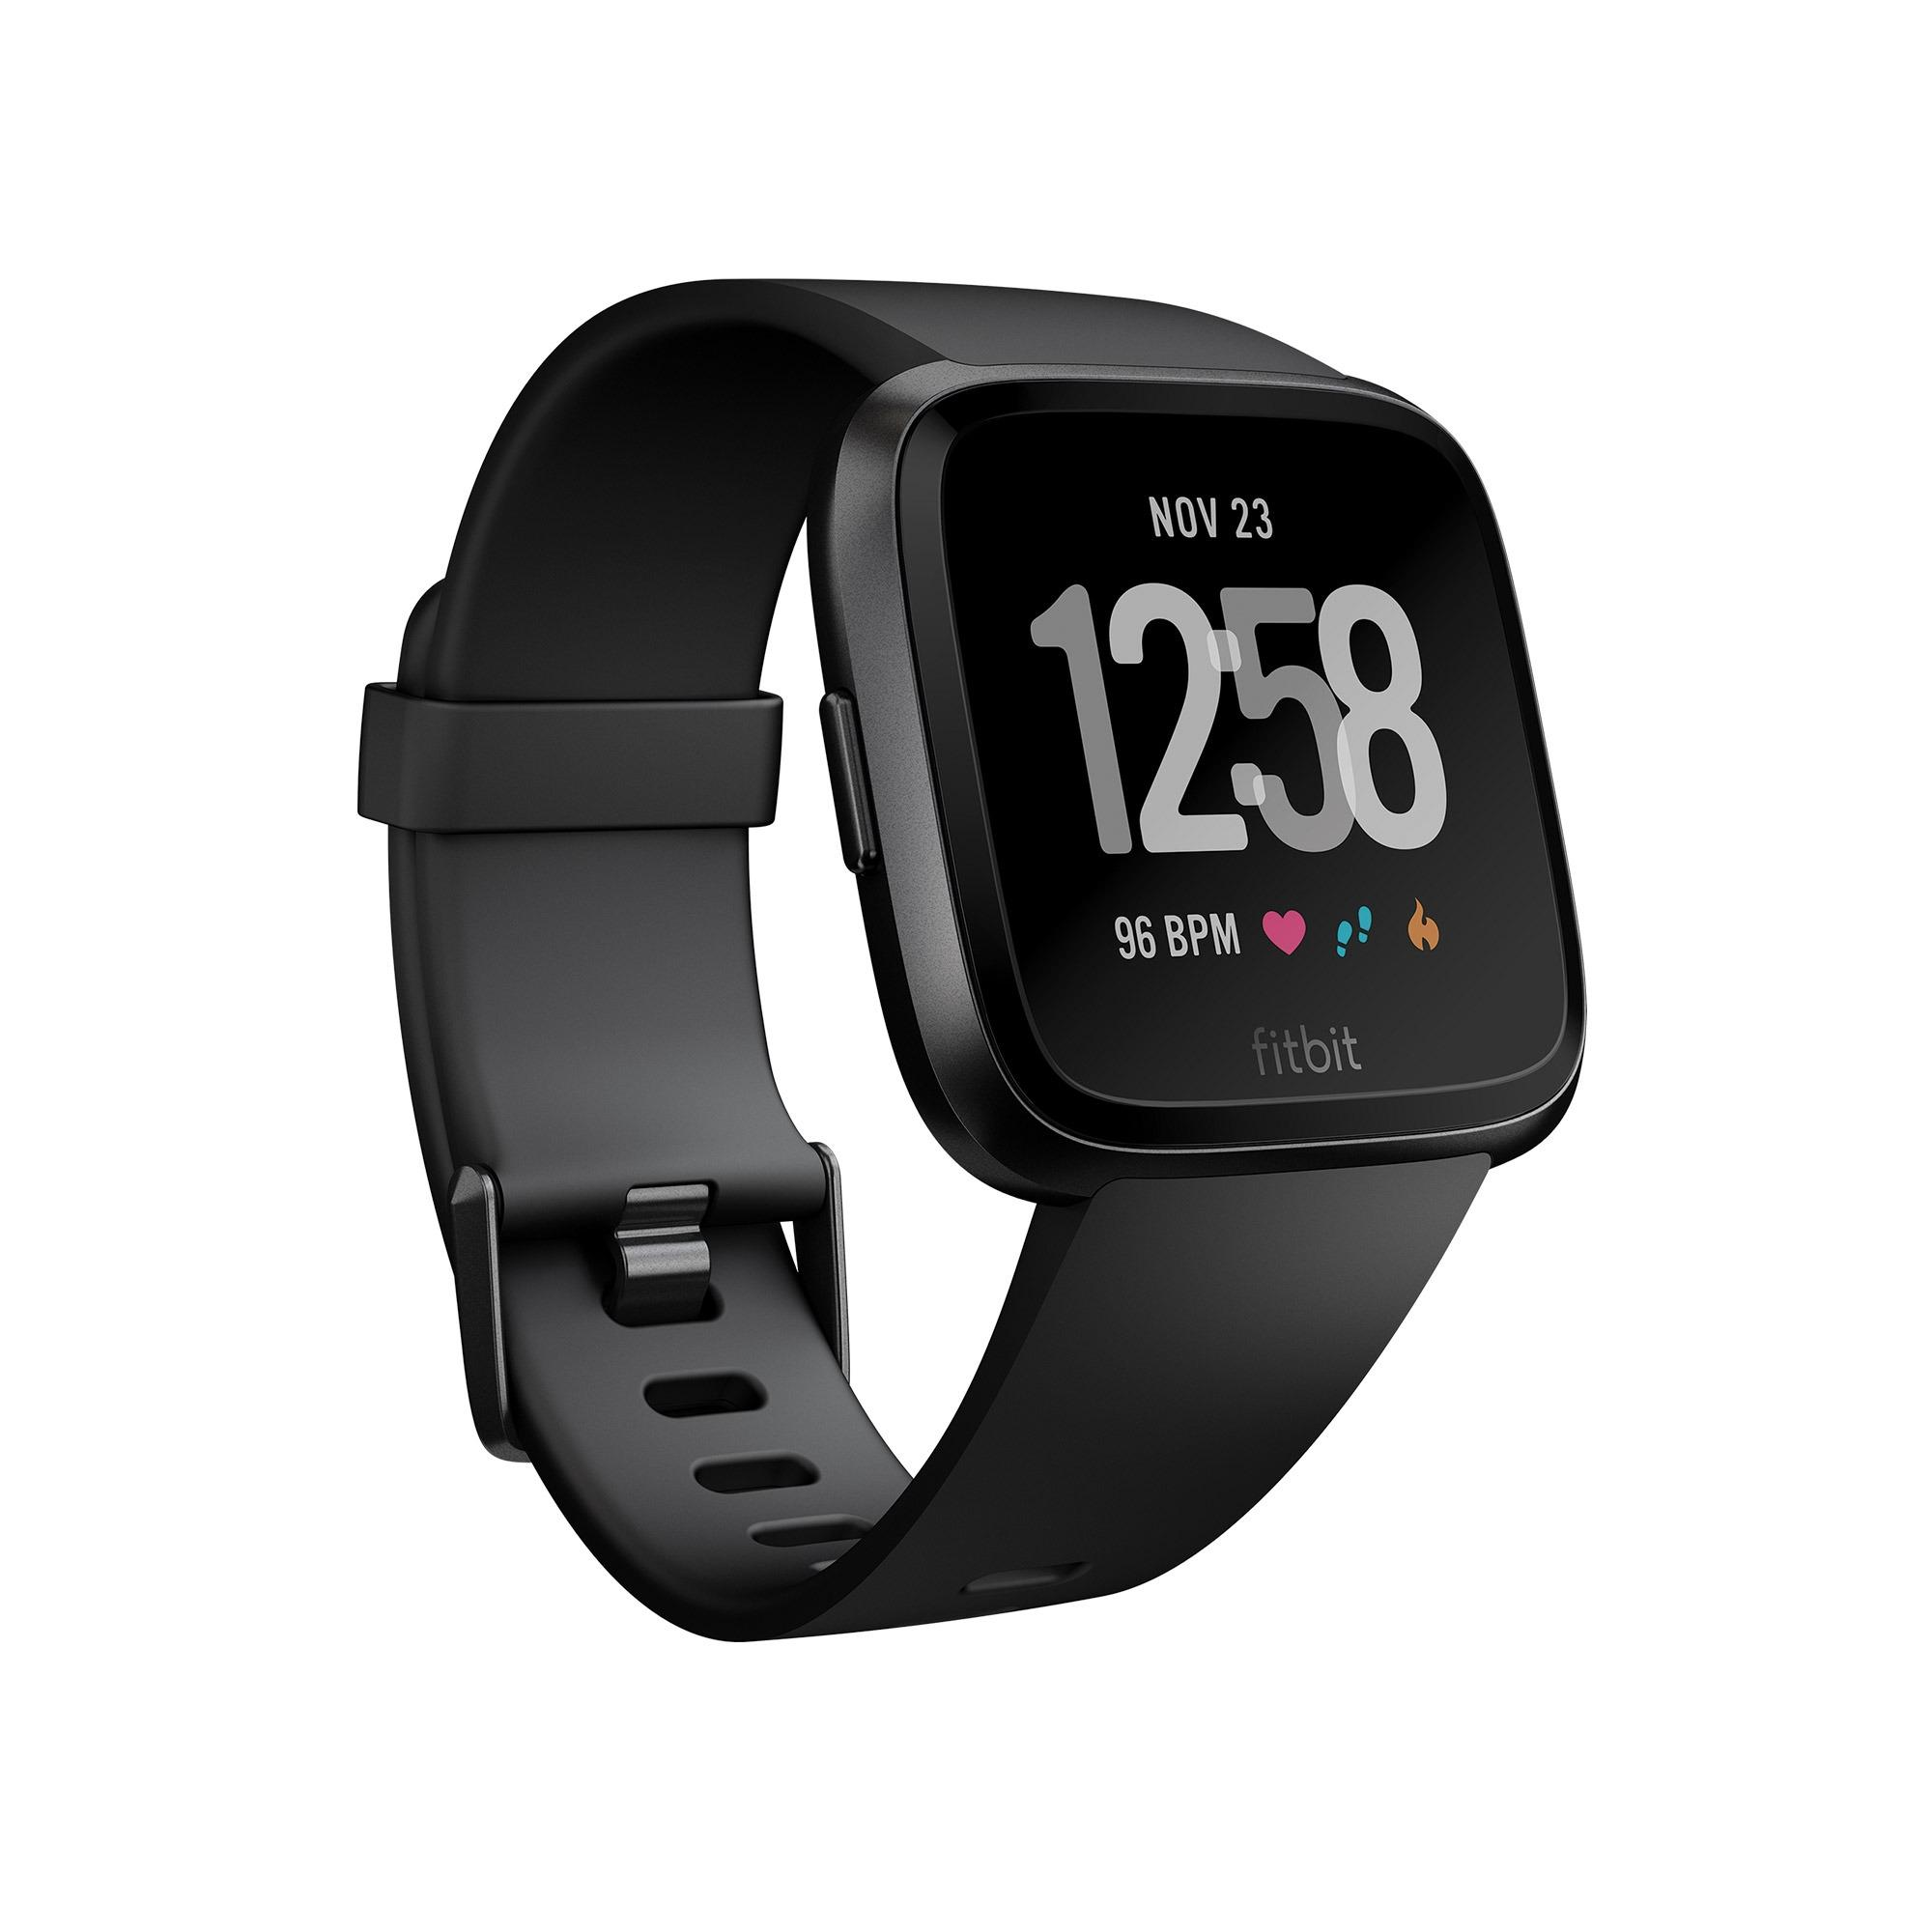 Fitbit Versa Water-Resistant Smart Watch + Heart Rate/Activity Tracker (2  Strap Sizes in the box) - Black/Black Aluminum